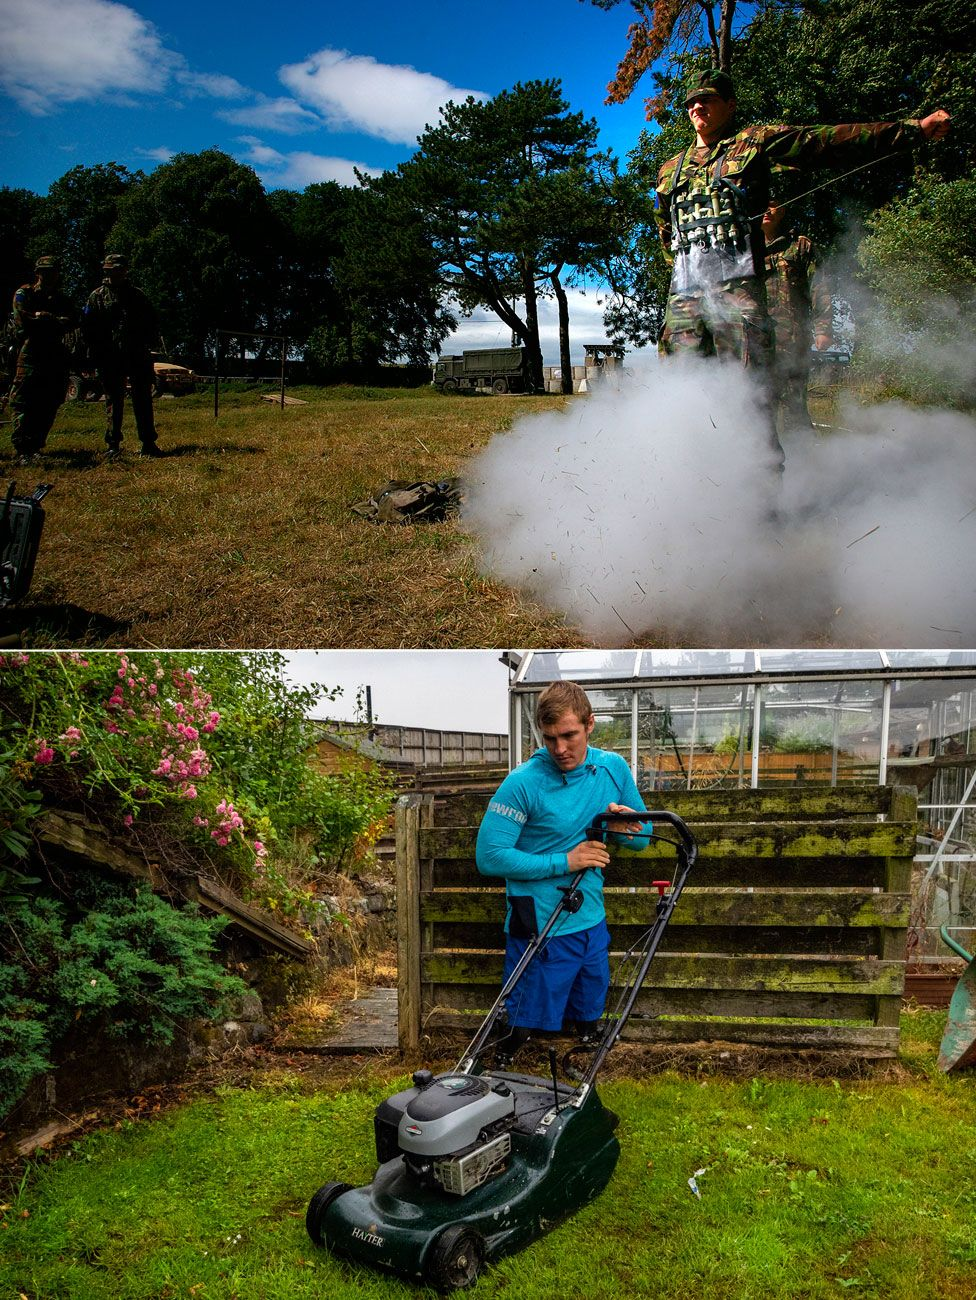 Photos showing Scotty Meenagh in the army and mowing the lawn as a civilian